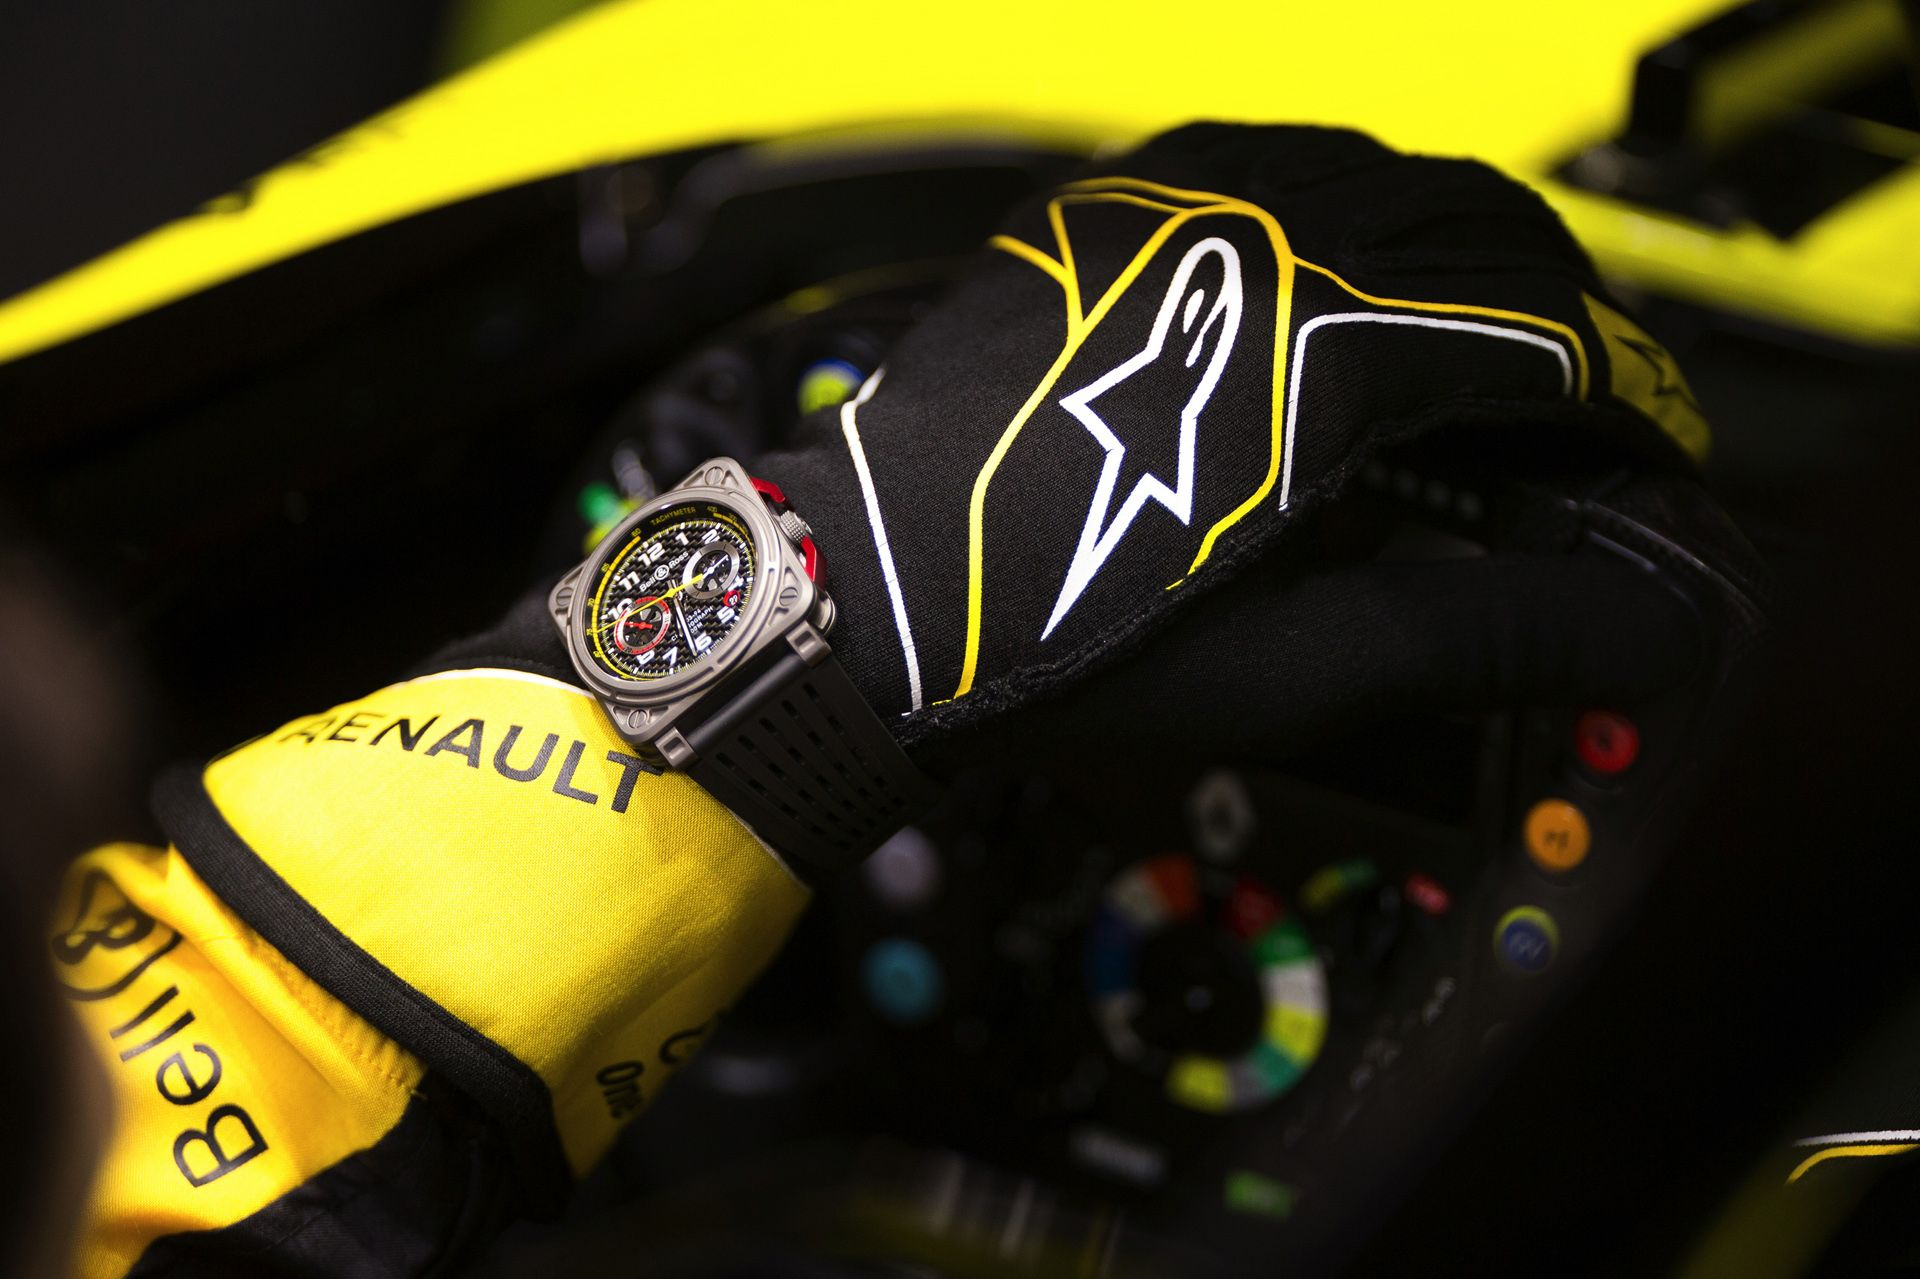 bell-ross-renault-rs18-watch-11